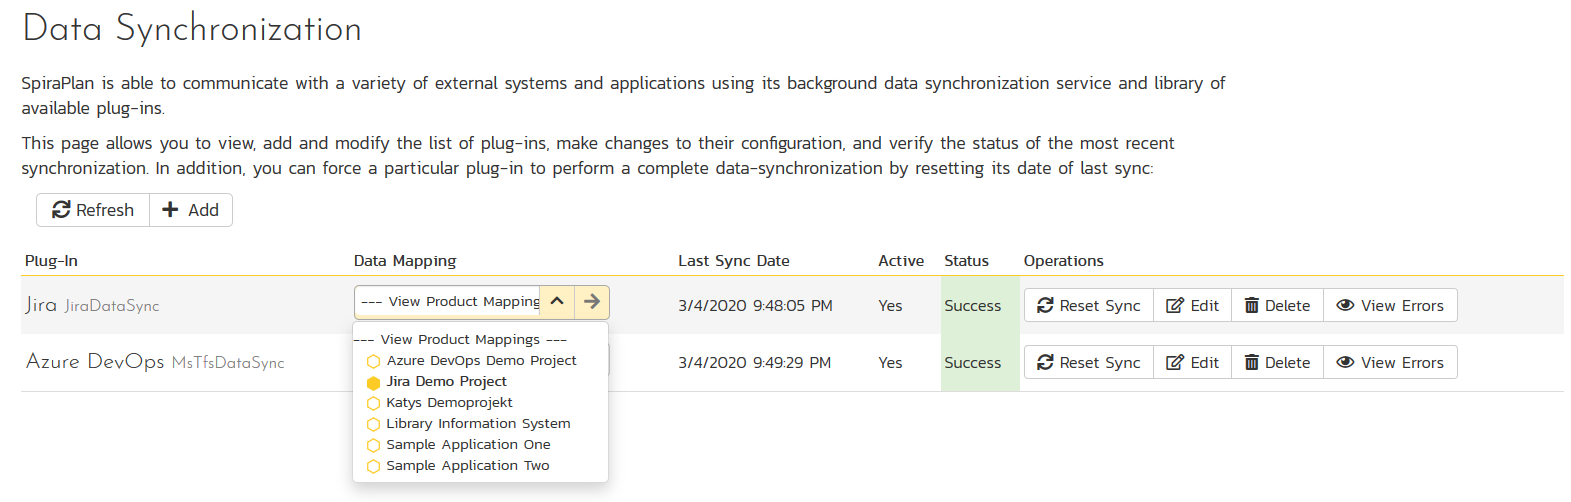 SpiraTest data synchronization service with Jira and Azure DevOps plugins active